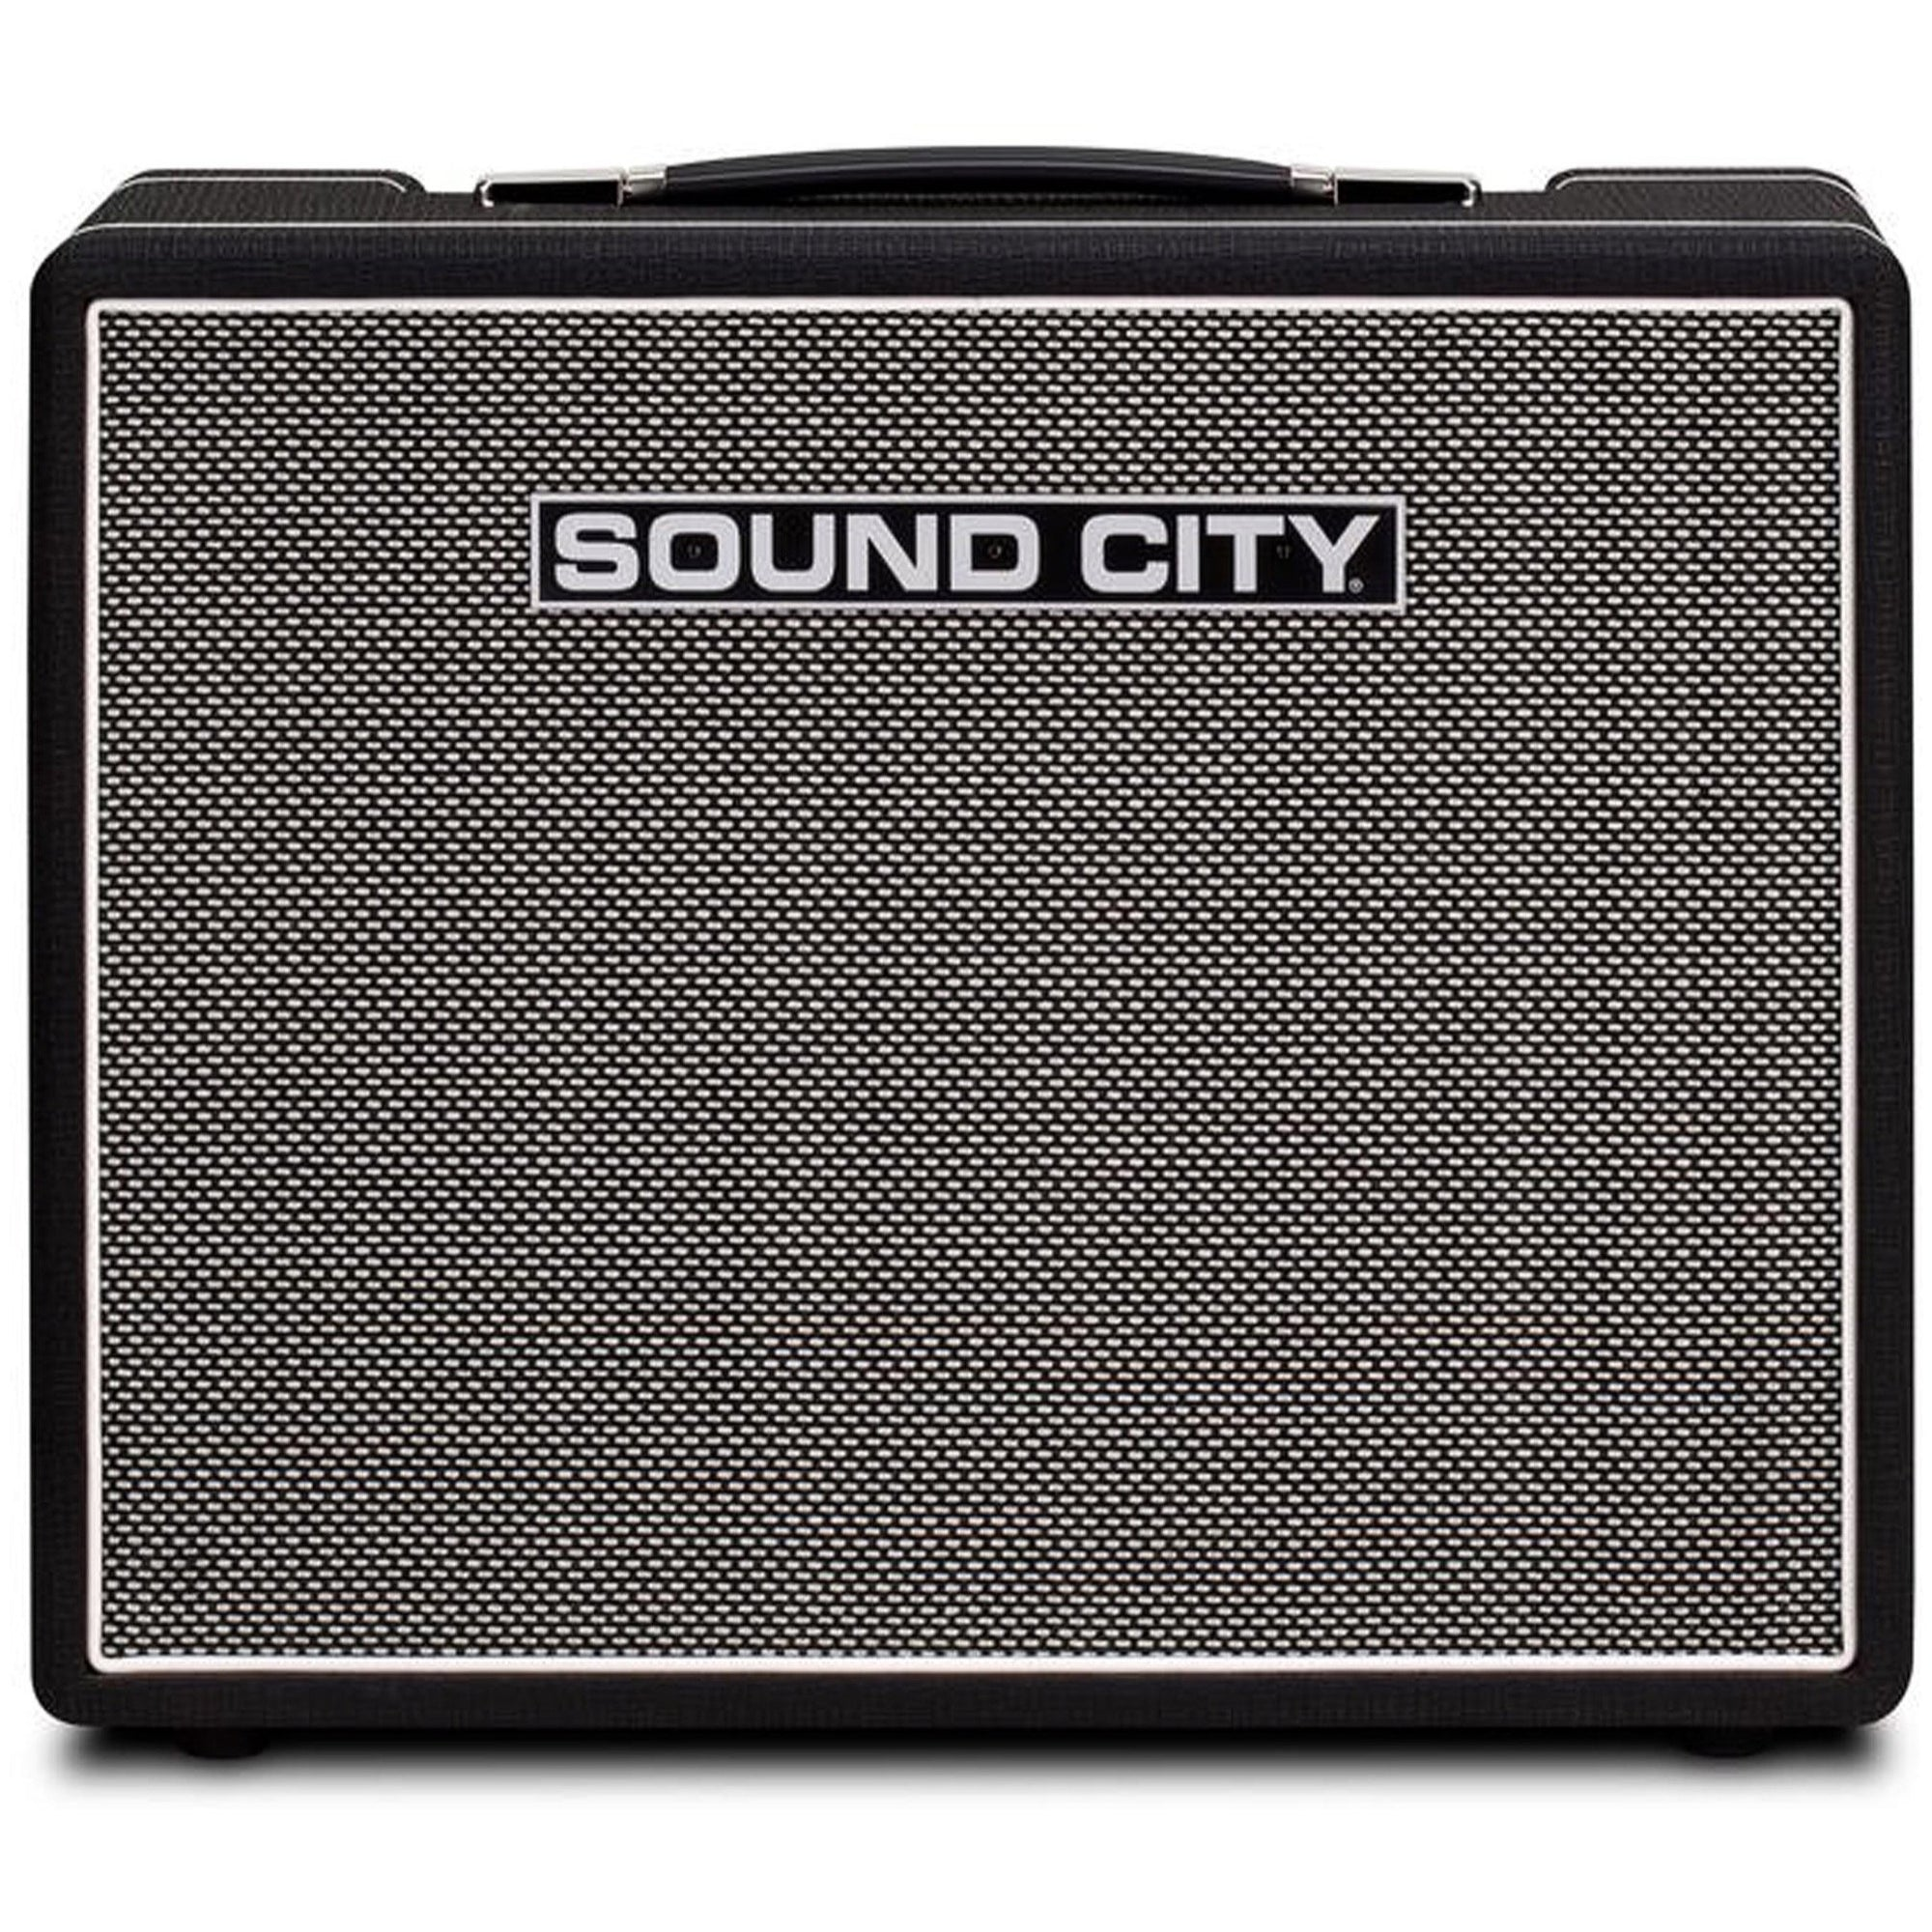 Sound City SC20 Guitar Combo Amplifier (20 Watts, 1x12 Inch)